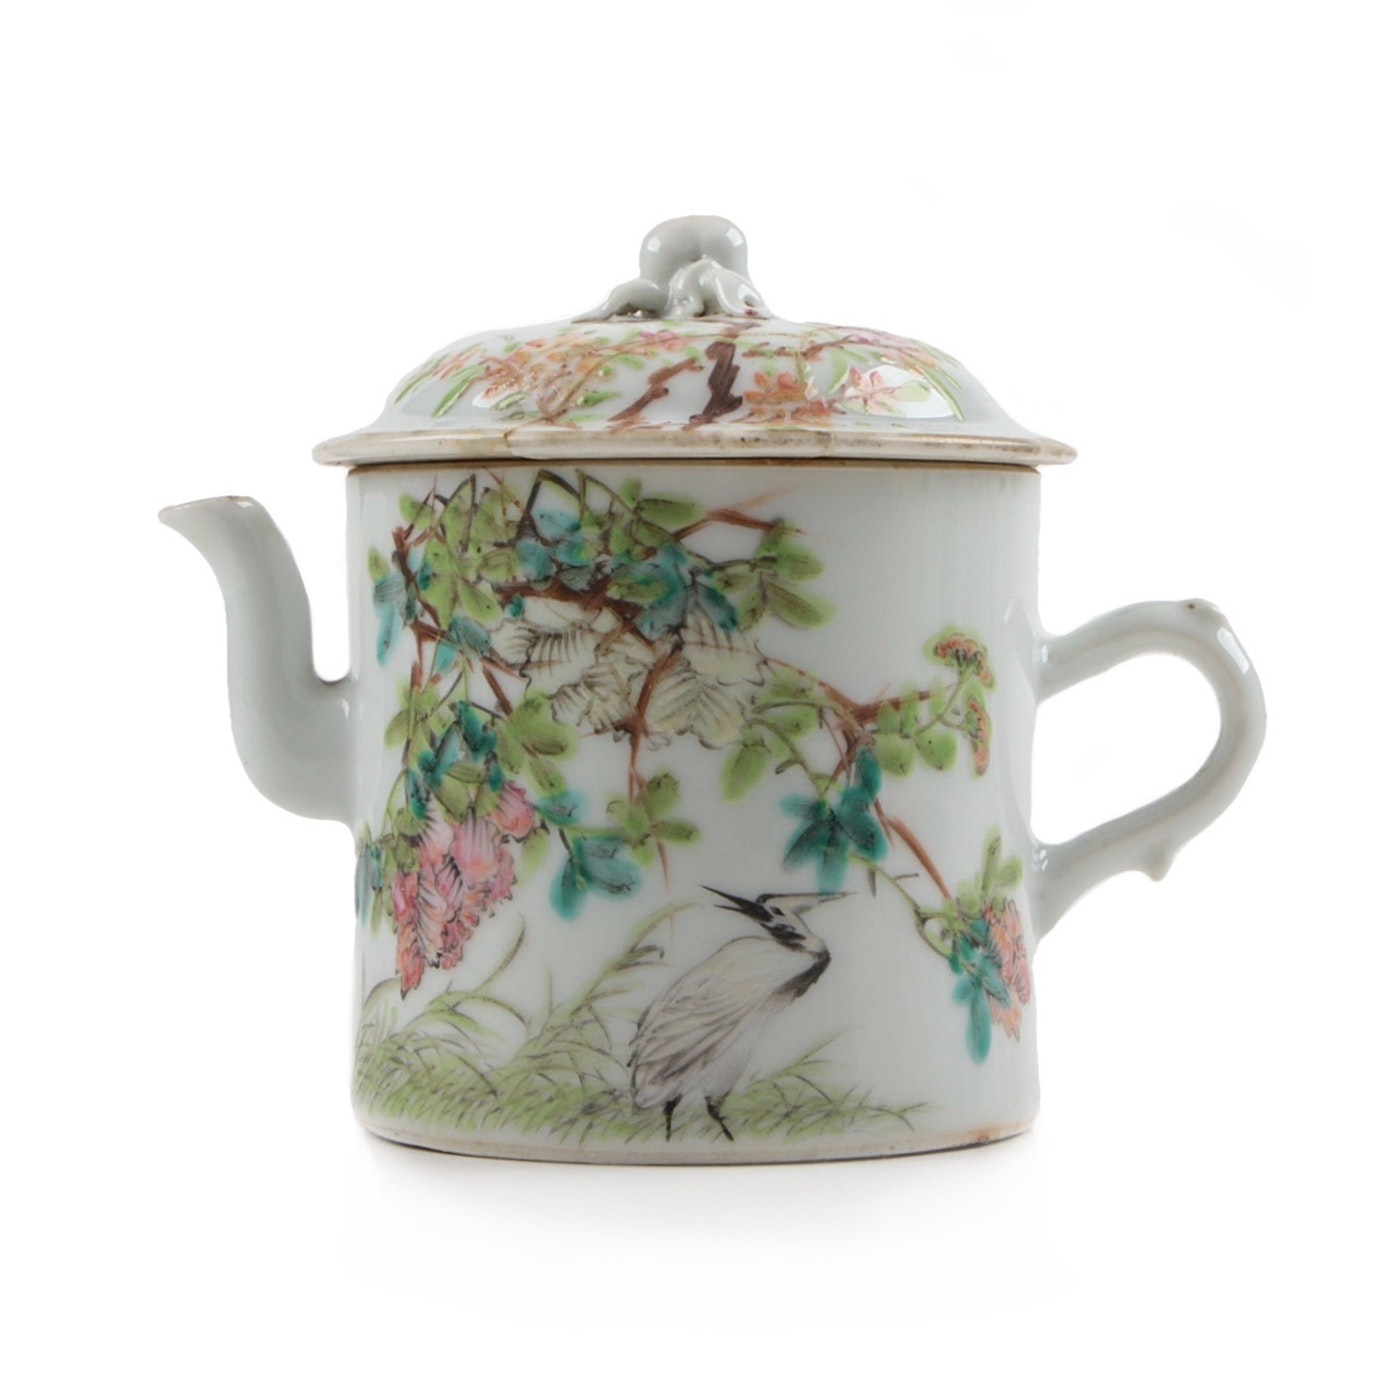 Chinese Porcelain Famille Rose Teapot with Imperial Kiln Mark, Dated 1894